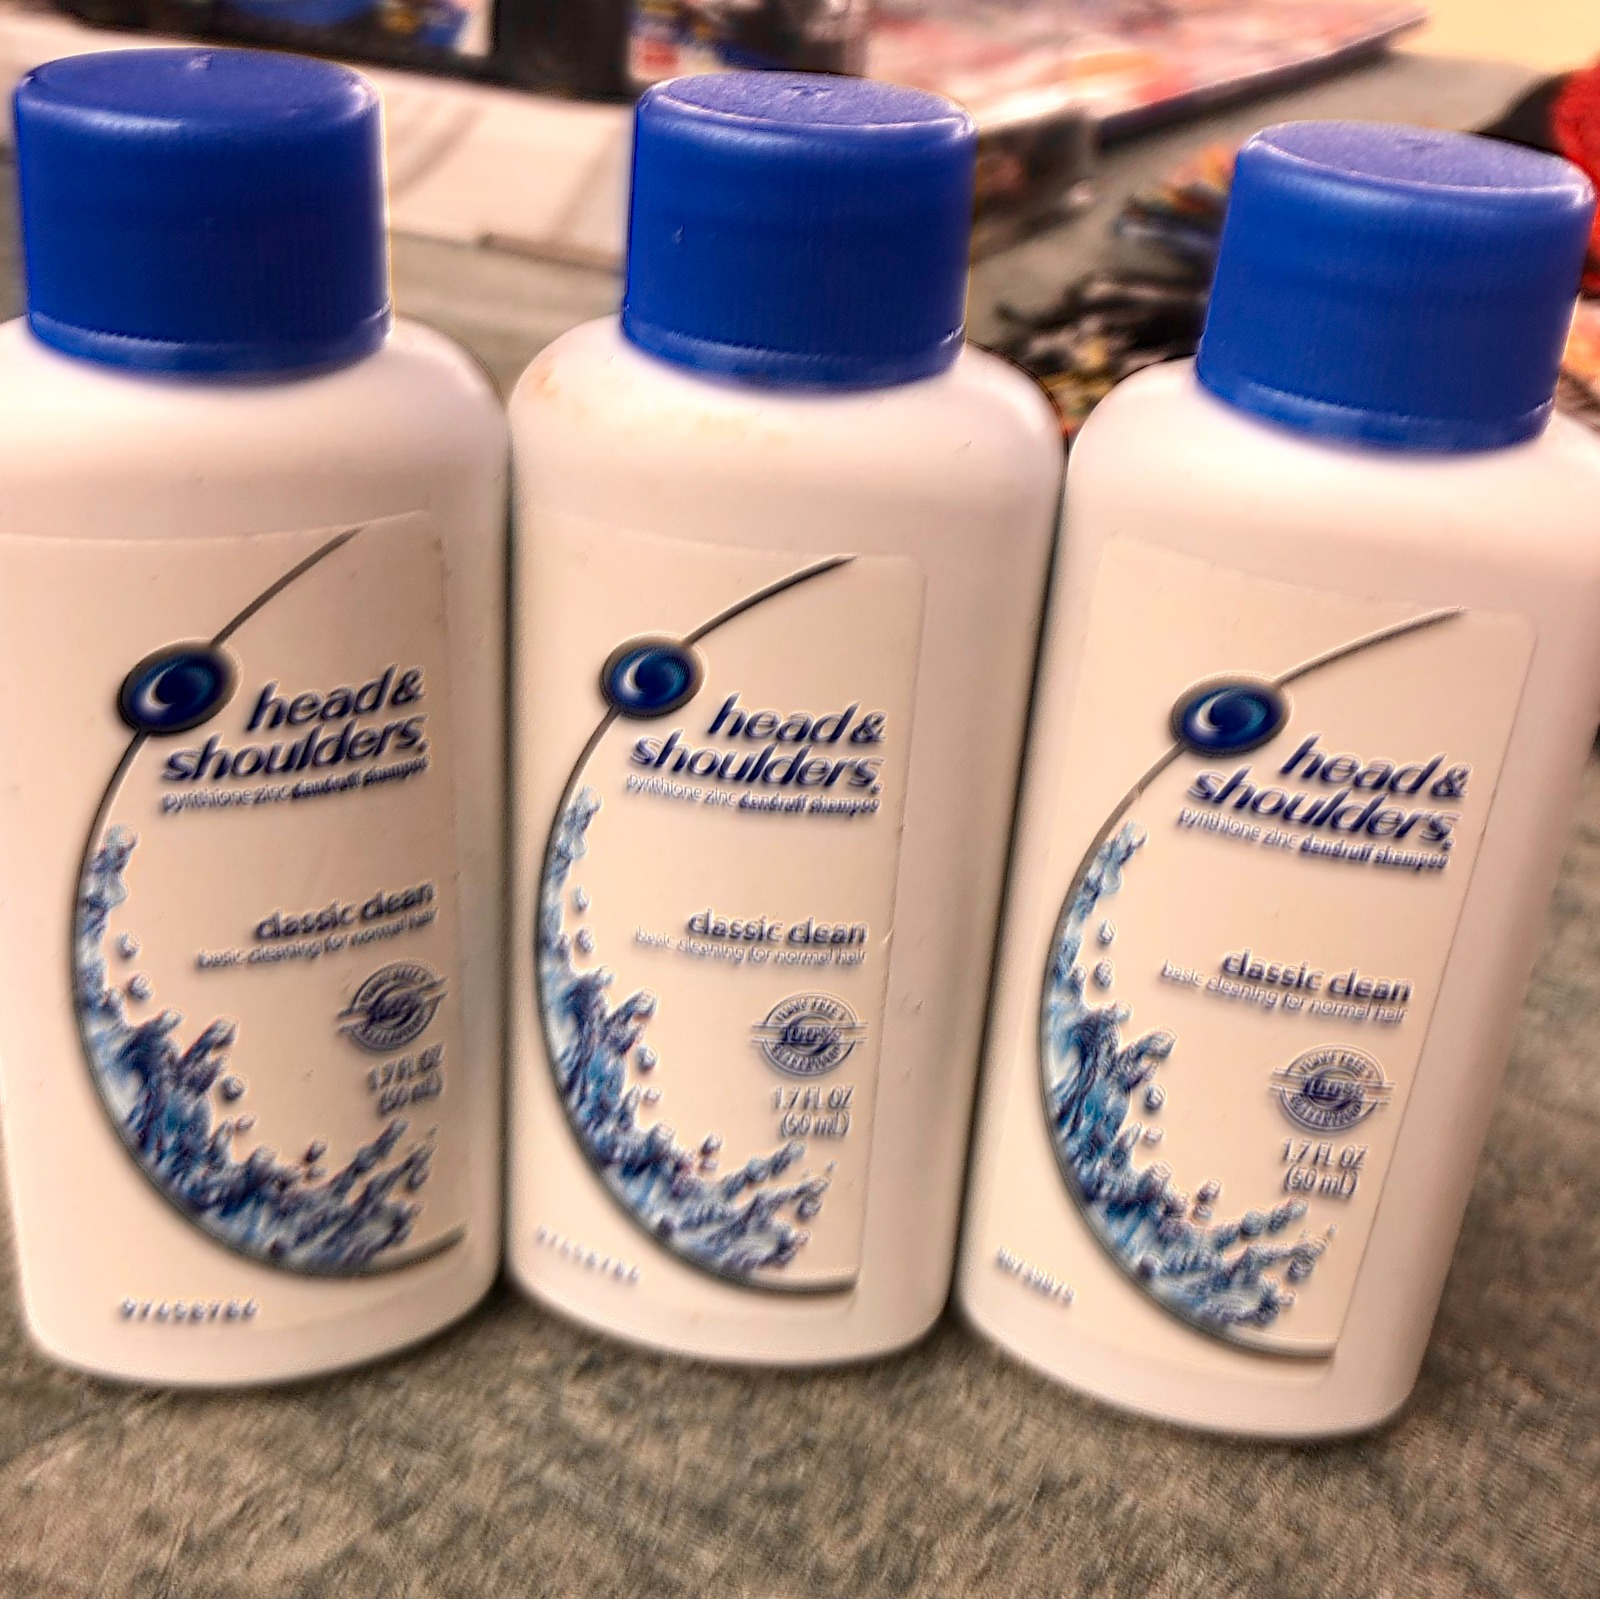 3 Head Shoulders Classic Clean 17 Fl Oz Dandruff Shampoo For Samphoo And New Condition